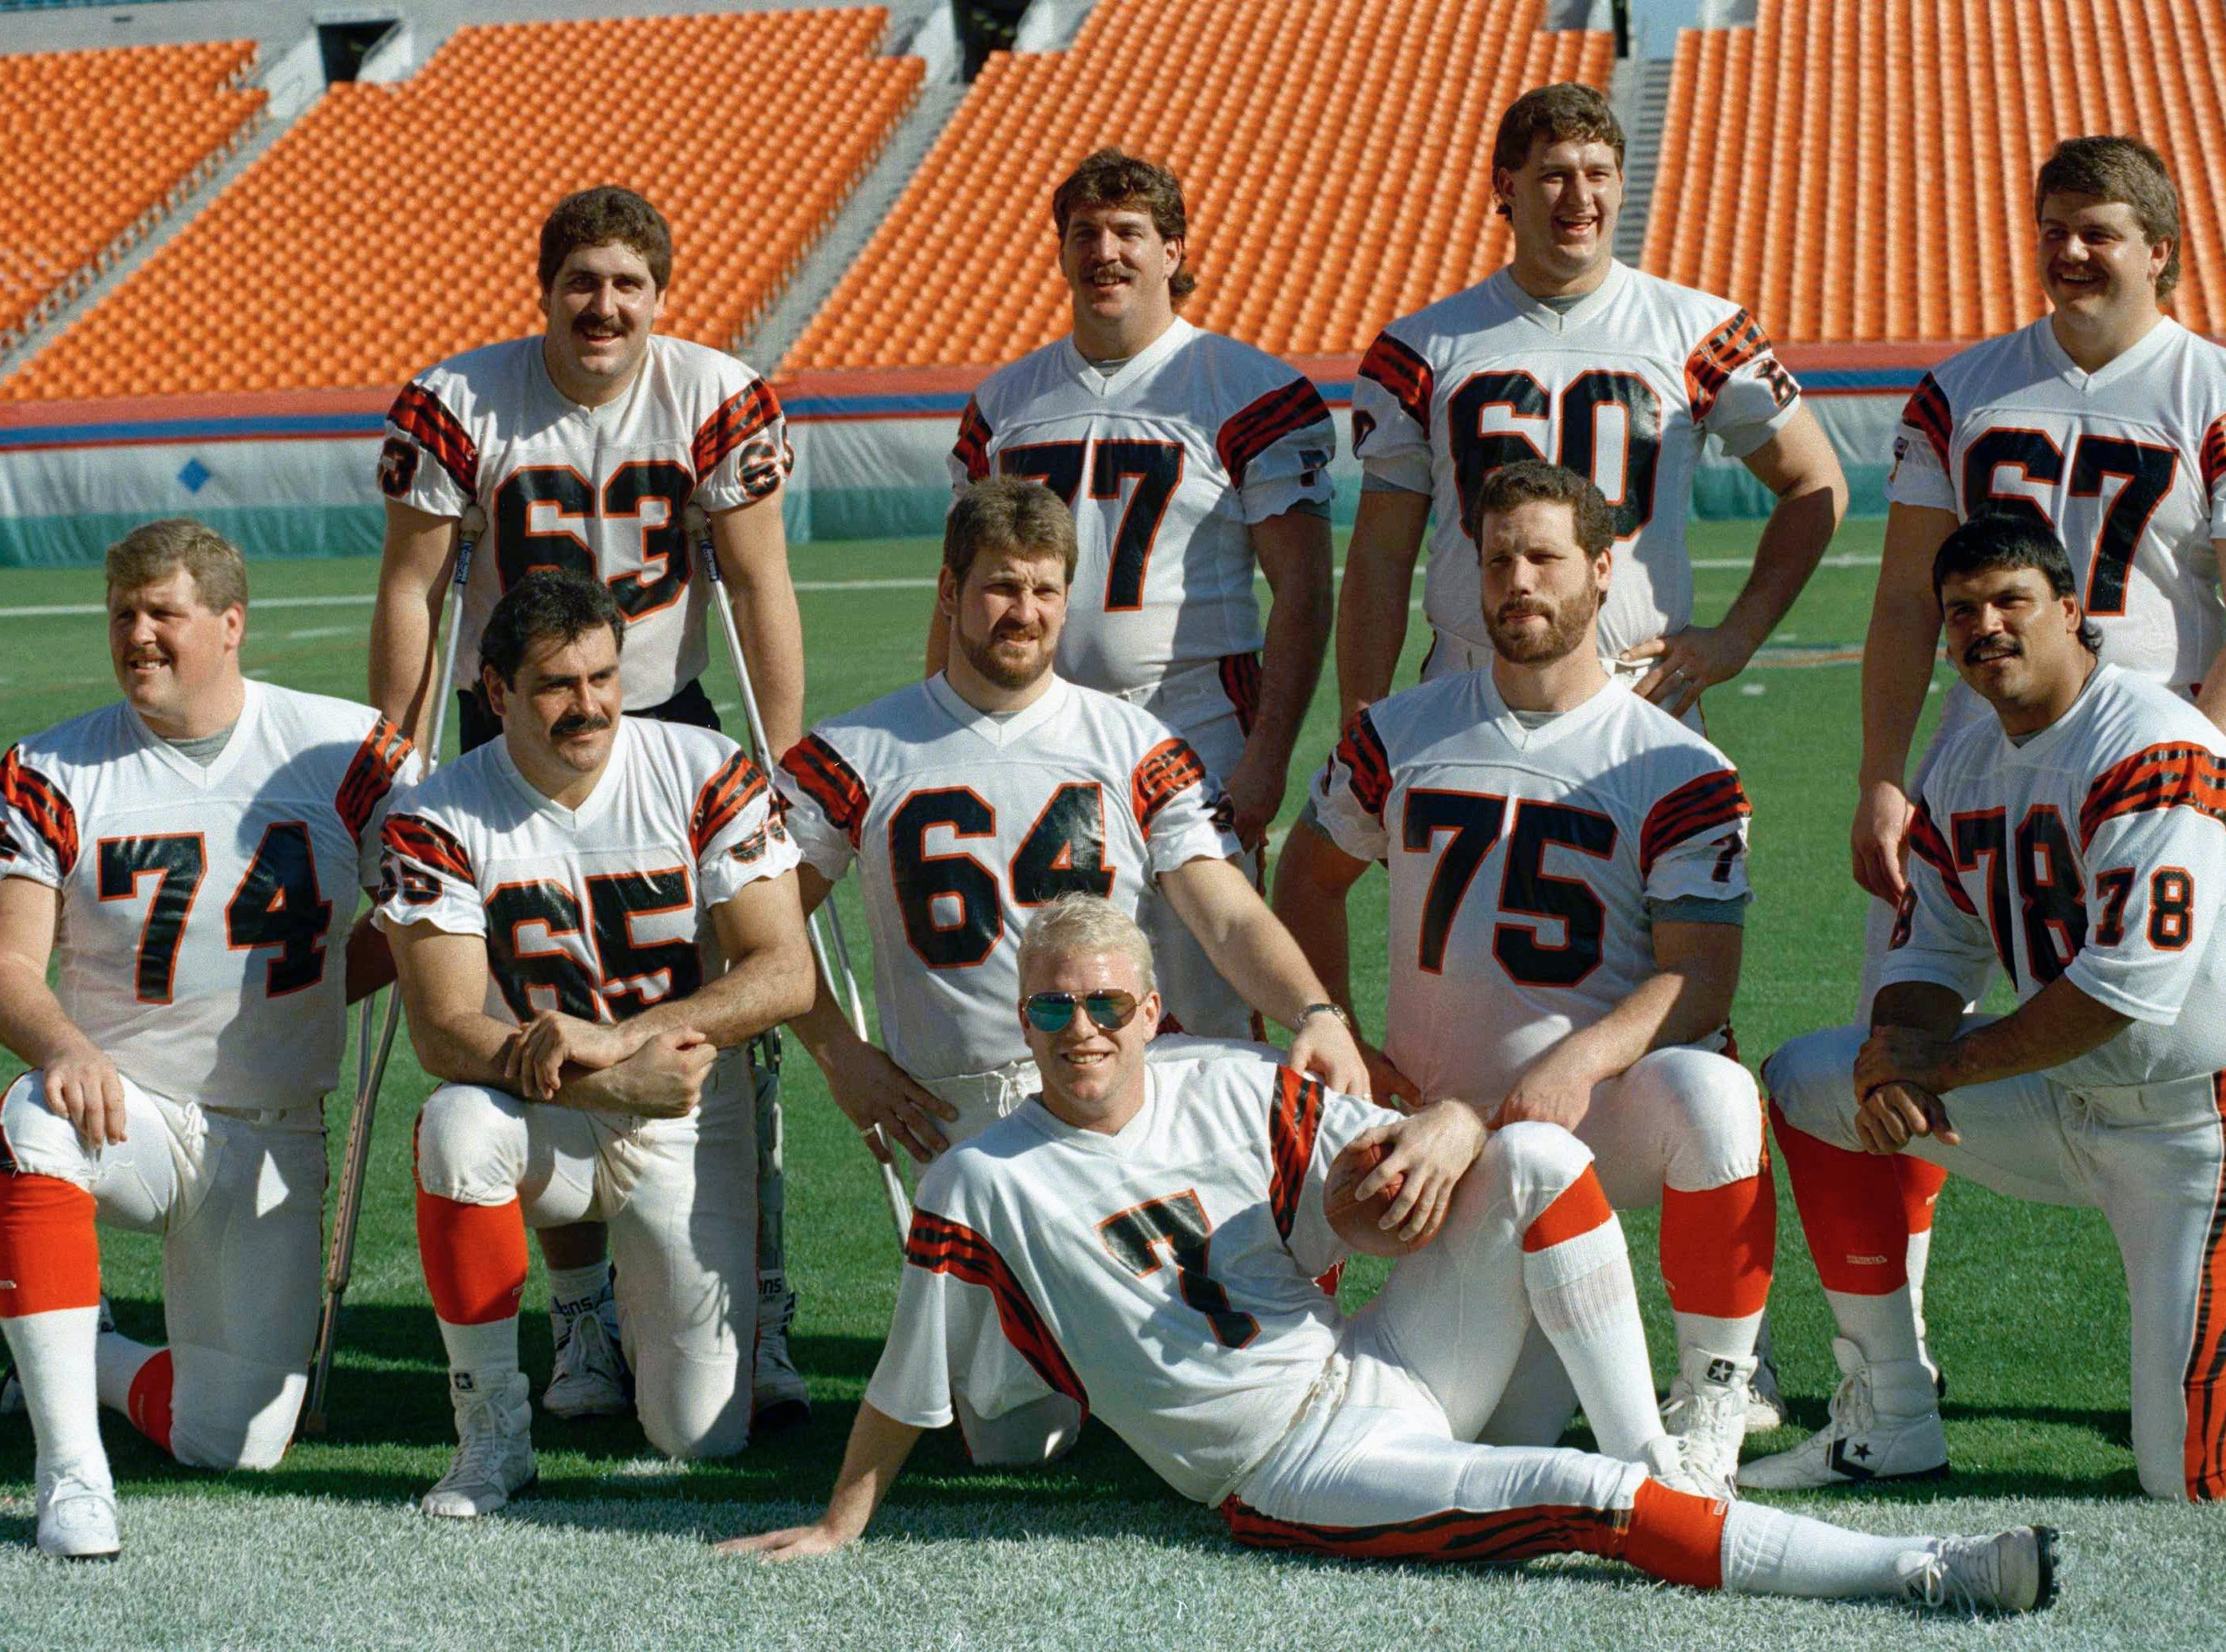 Cincinnati Bengals quarterback Boomer Esiason (7) poses with the Bengals' offensive line in Miami as they turn out for Super Bowl Media Day on Tuesday, Jan. 17, 1989. From left, back row: Joe Walter (63), Herb Wester (77), Dave Smith (60), David Douglas (67). Front: Brian Blados (74), Max Montoya (65), Bruce Kozerski (64), Bruce Reimers (75), Anthony Munoz (78).